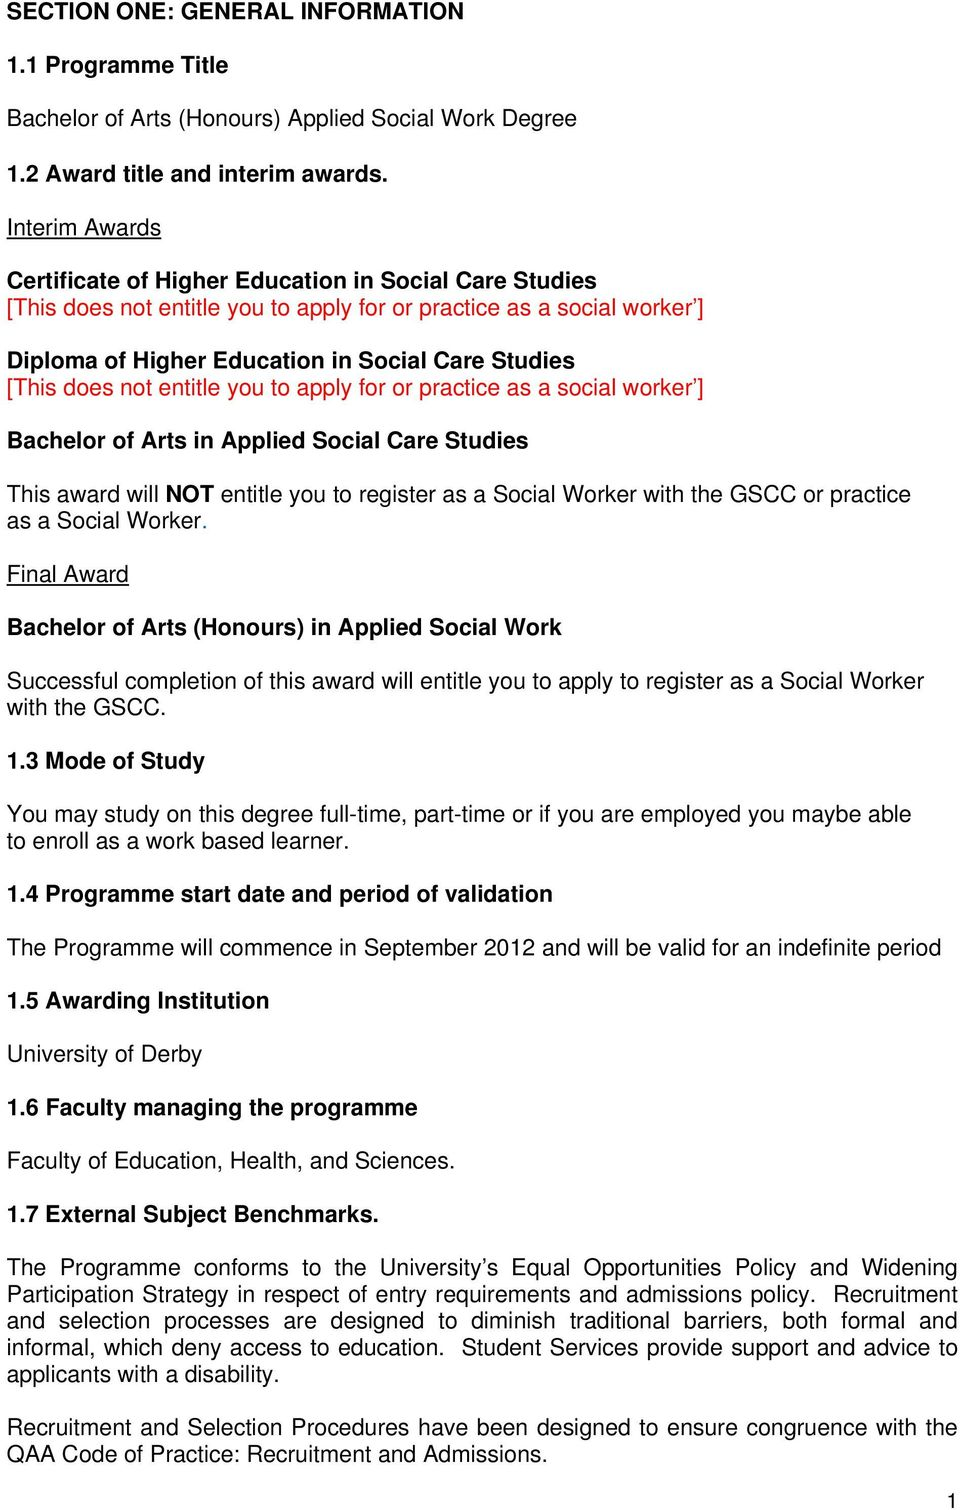 does not entitle you to apply for or practice as a social worker ] Bachelor of Arts in Applied Social Care Studies This award will NOT entitle you to register as a Social Worker with the GSCC or